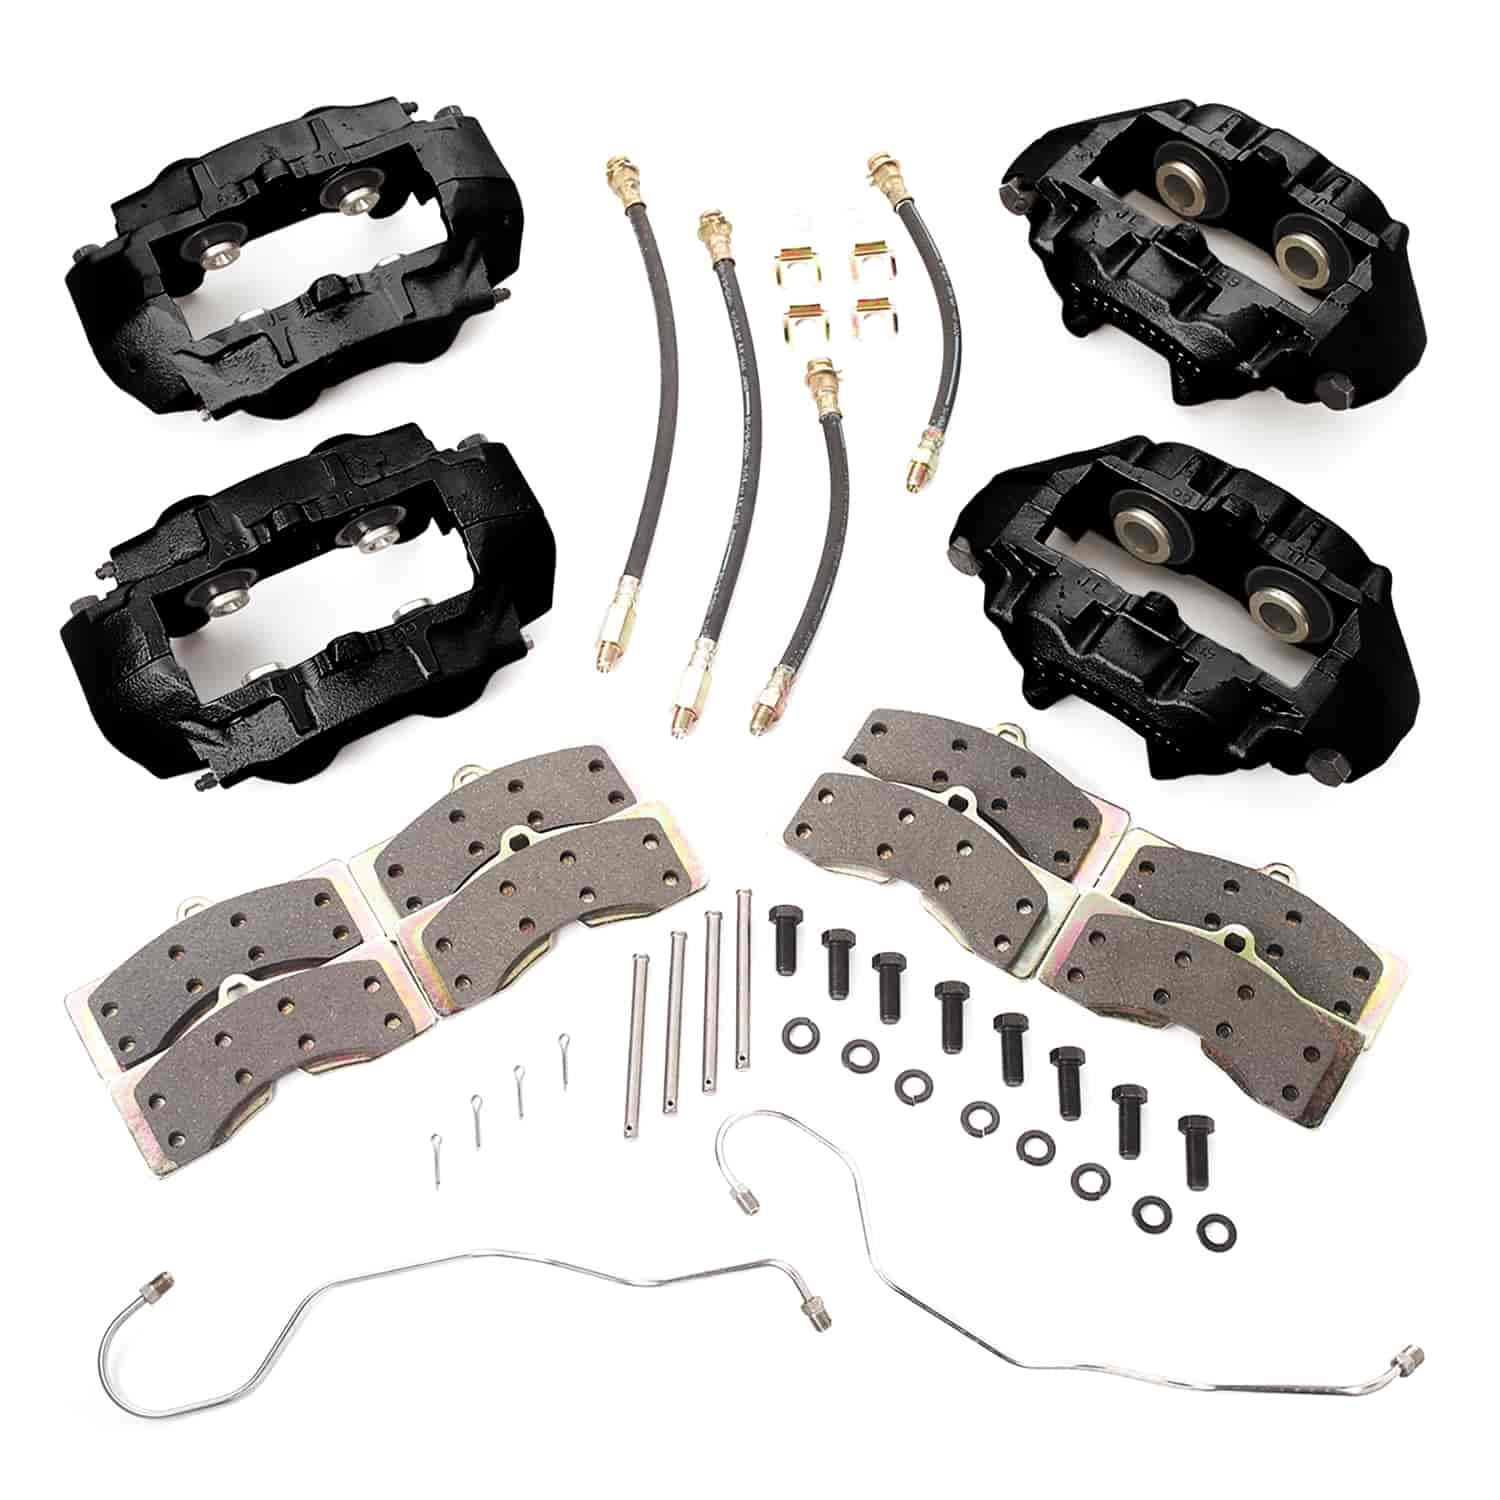 Stainless Steel Brakes A109 - Stainless Steel Brakes OEM Quick Change Caliper Kits